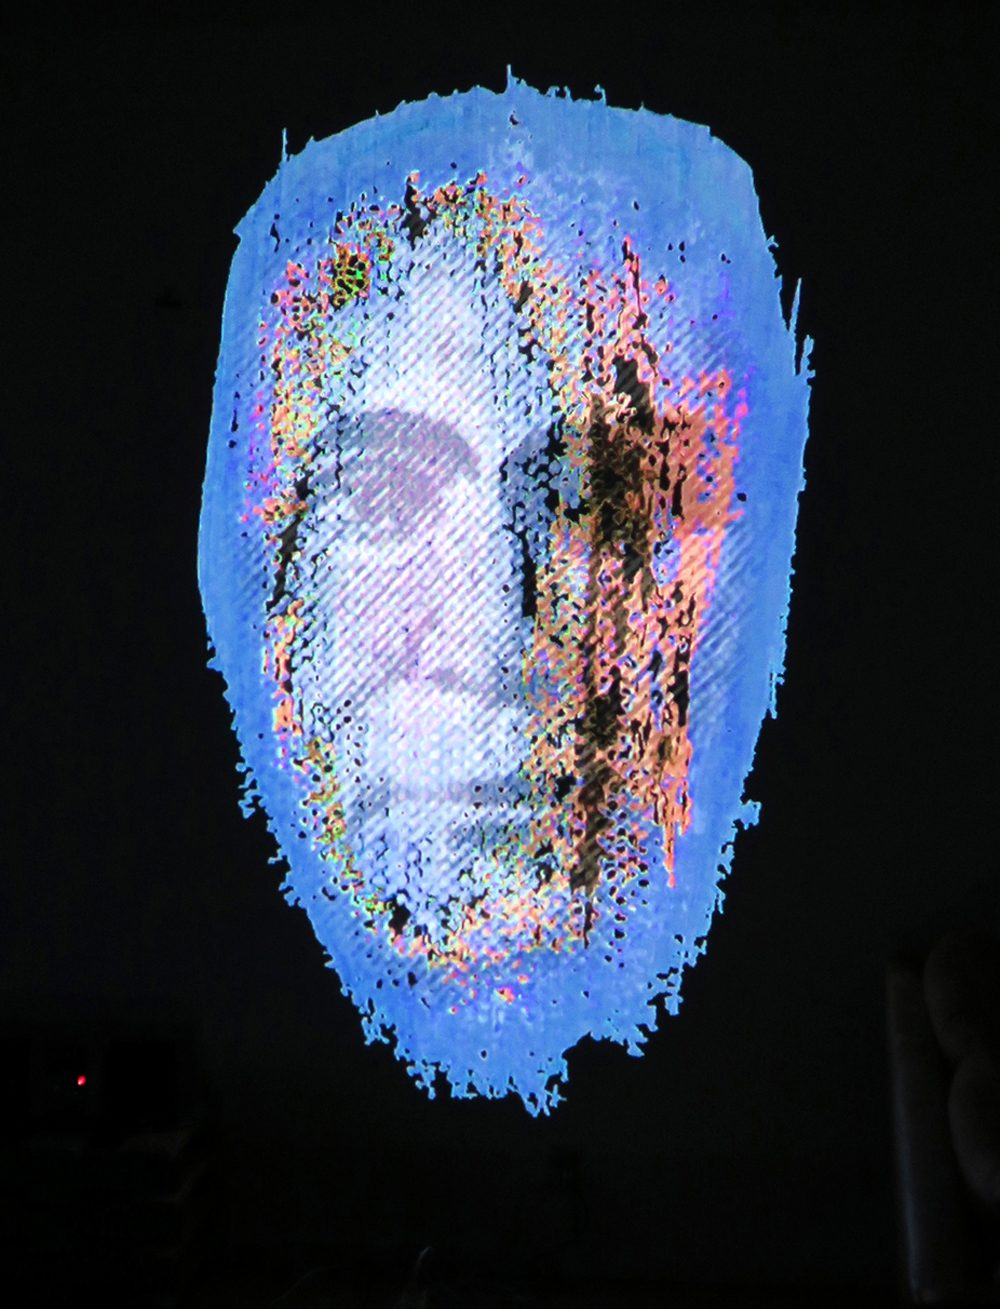 48 portraits projection3 by artist Marianne Casmose1